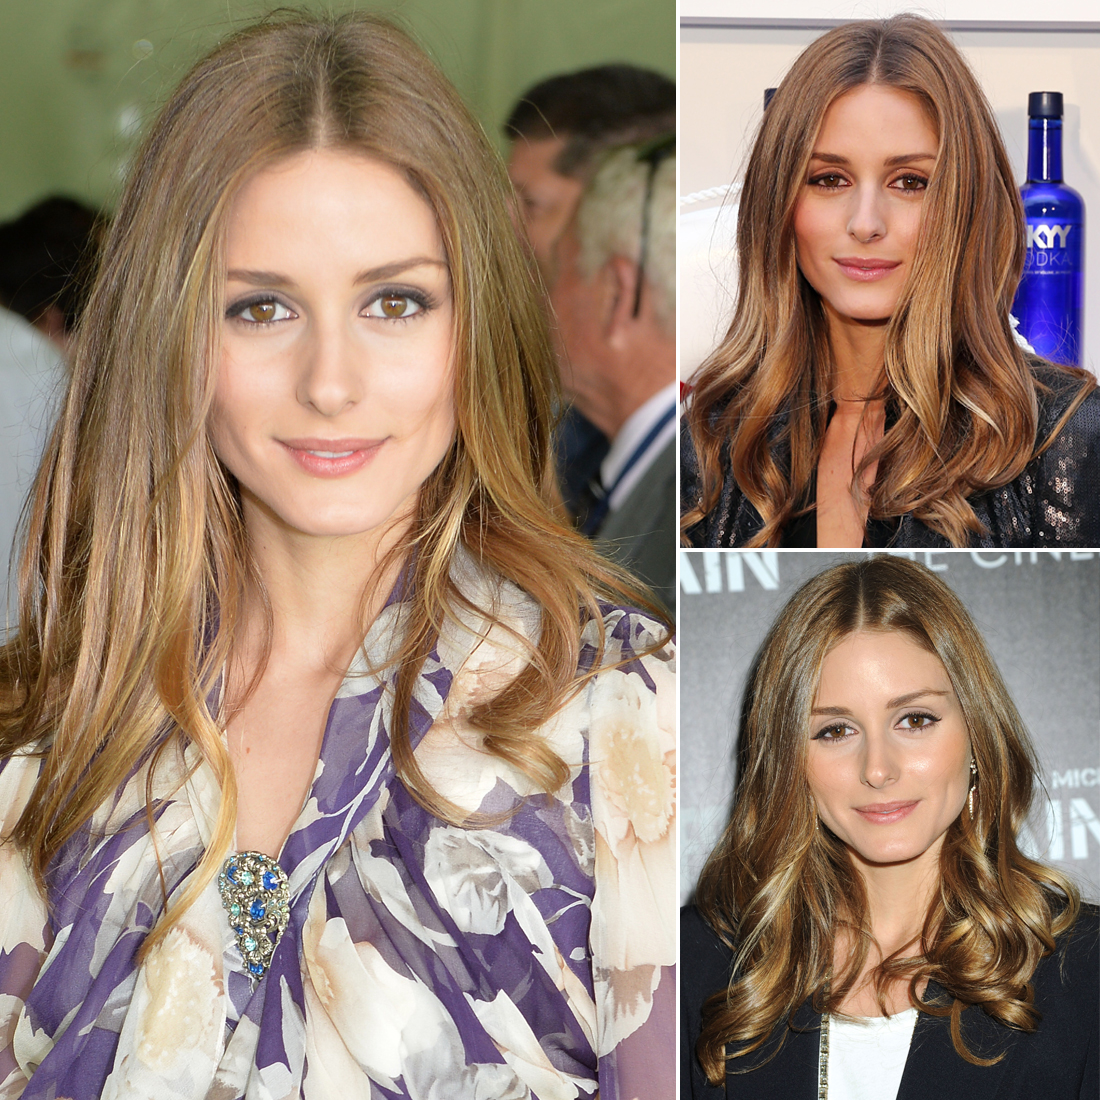 Who: Olivia Palermo The look: Loose, center-parted waves and simple eyeliner The popular socialite has an obvious penchant for the classics when it comes to both her beauty and fashion aesthetics. Olivia's no-muss hair and makeup looks prove that minimal effort goes a long way.